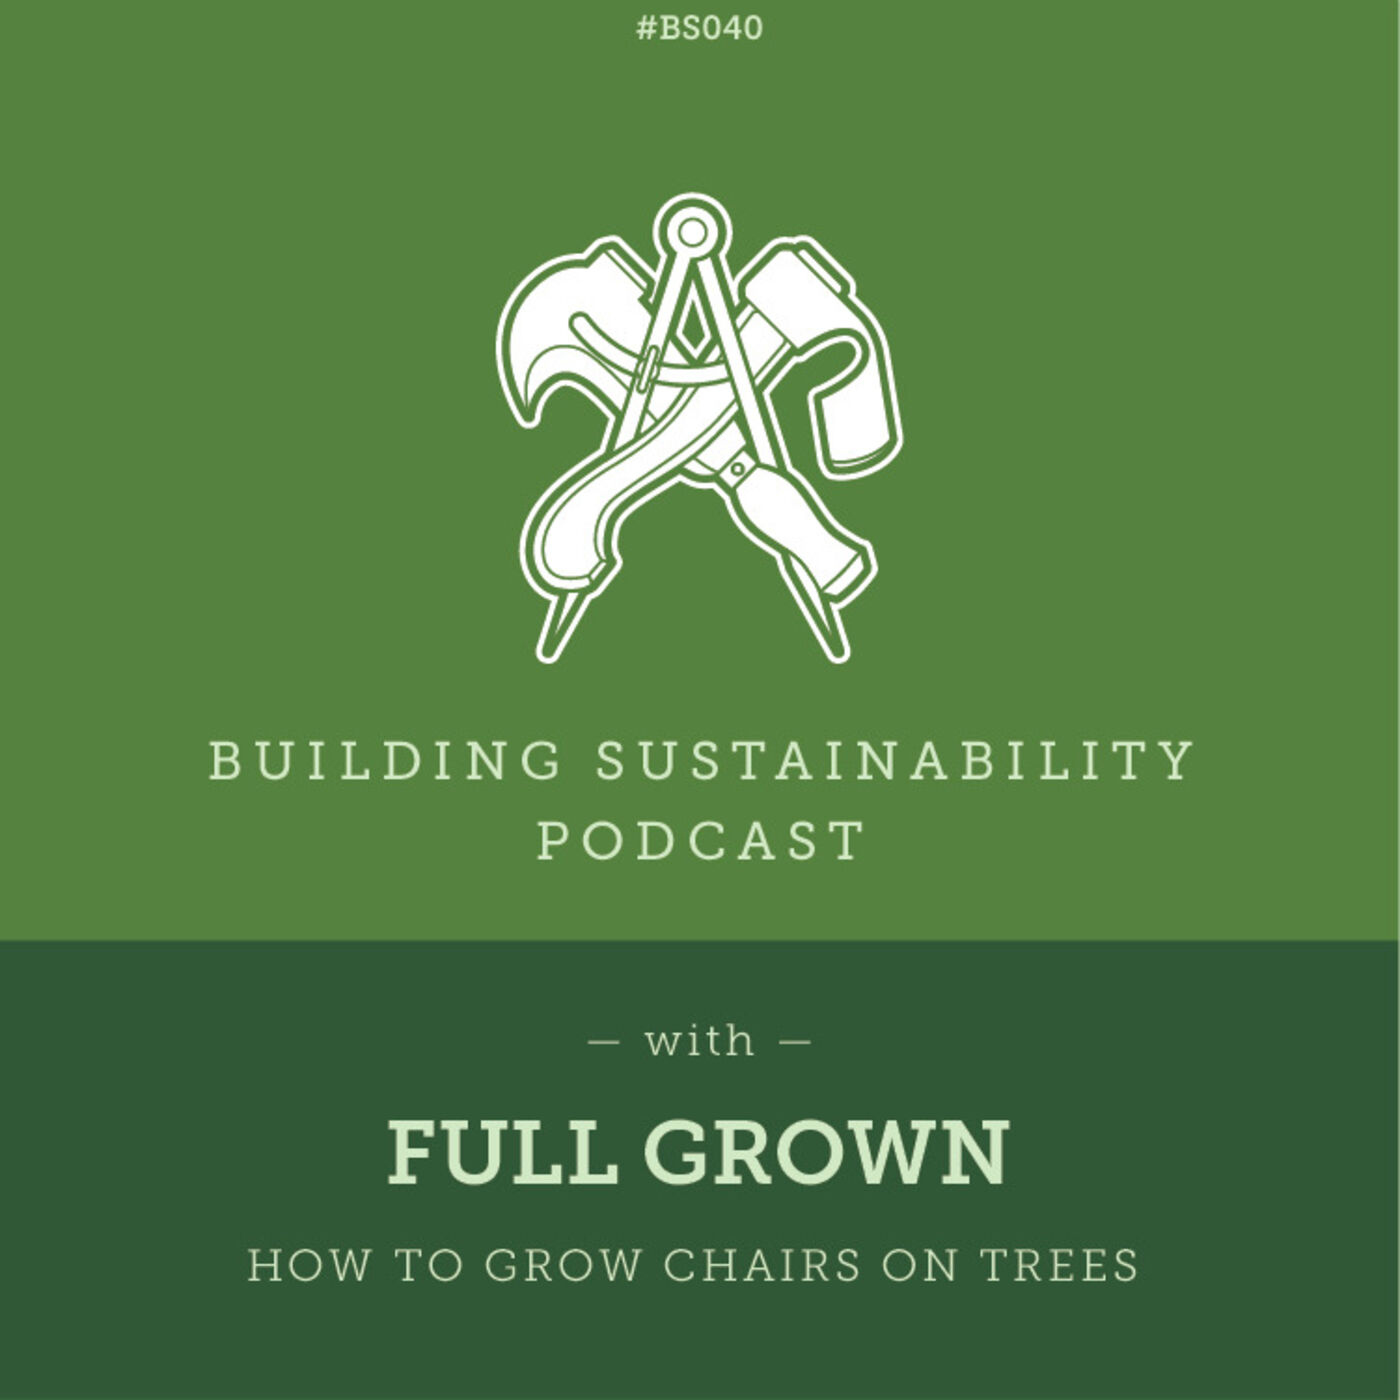 Slow manufacture for carbon capture  - Full Grown - Alice & Gavin Munro - BS040